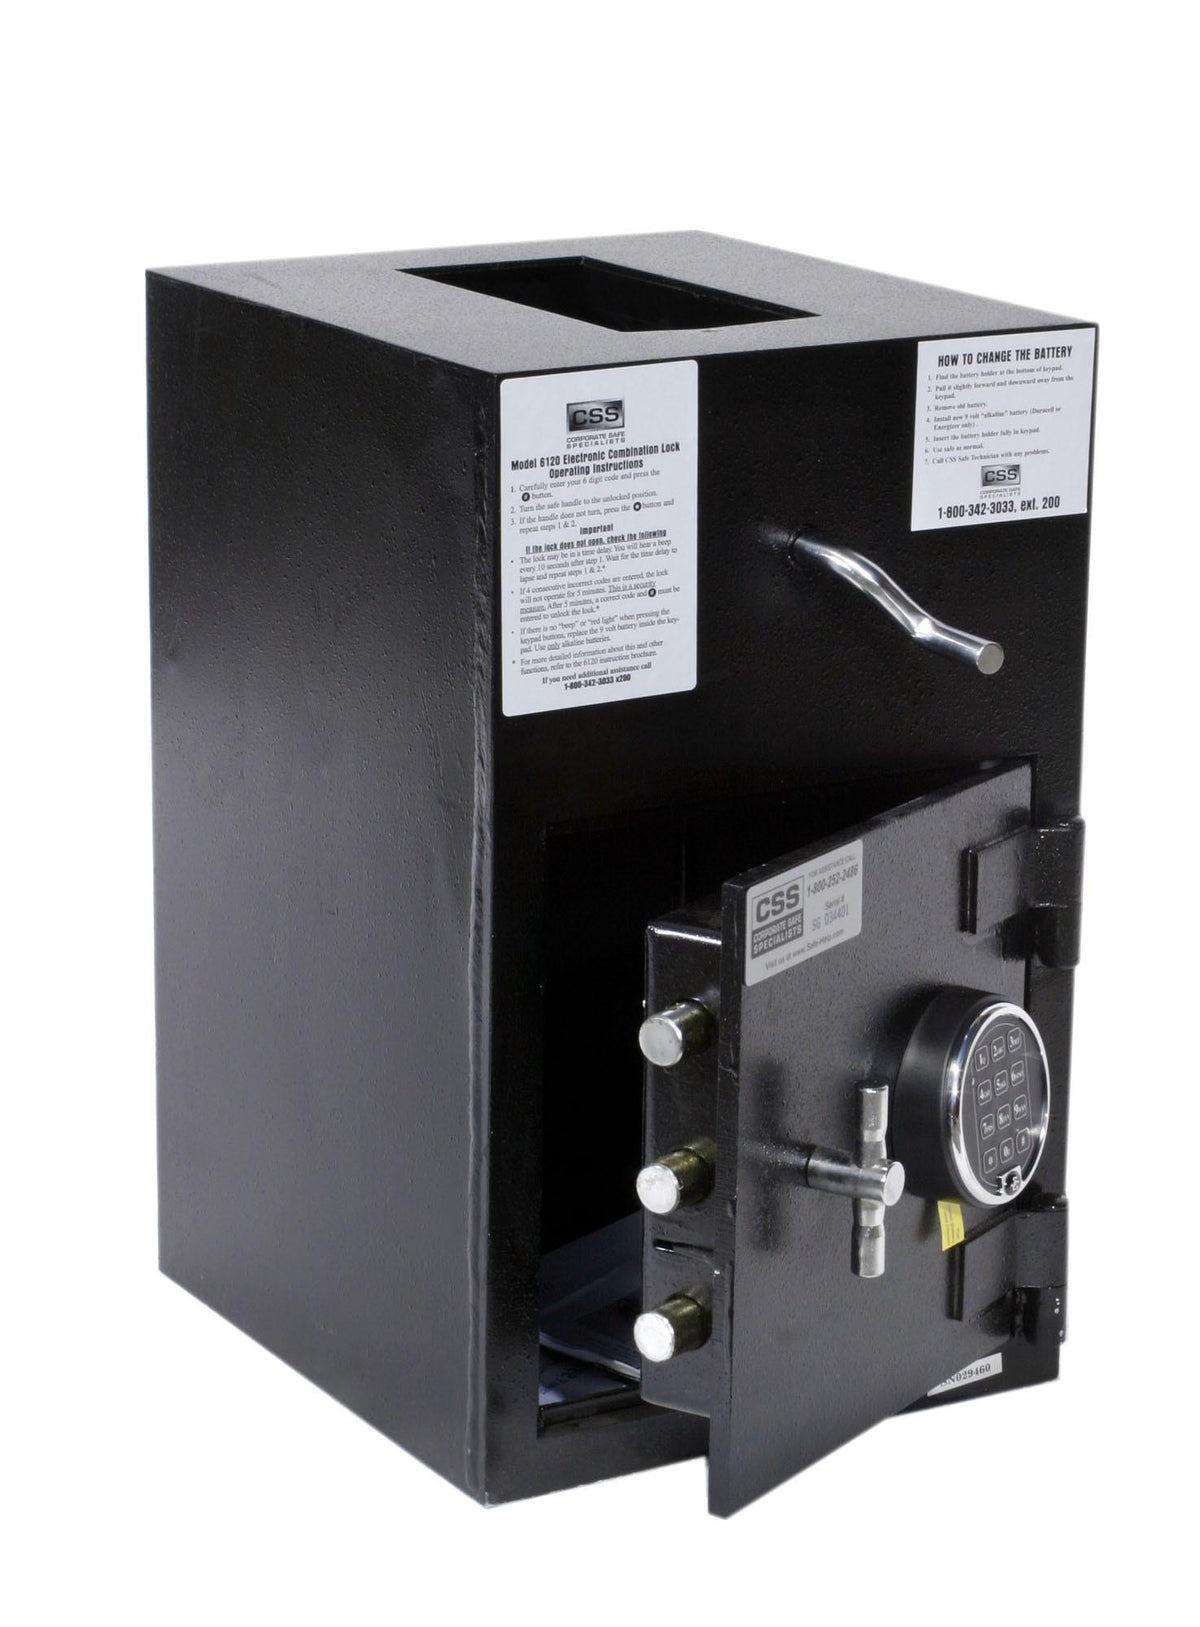 FireKing RH2012-FK1 Rotary Hopper Depository Safe